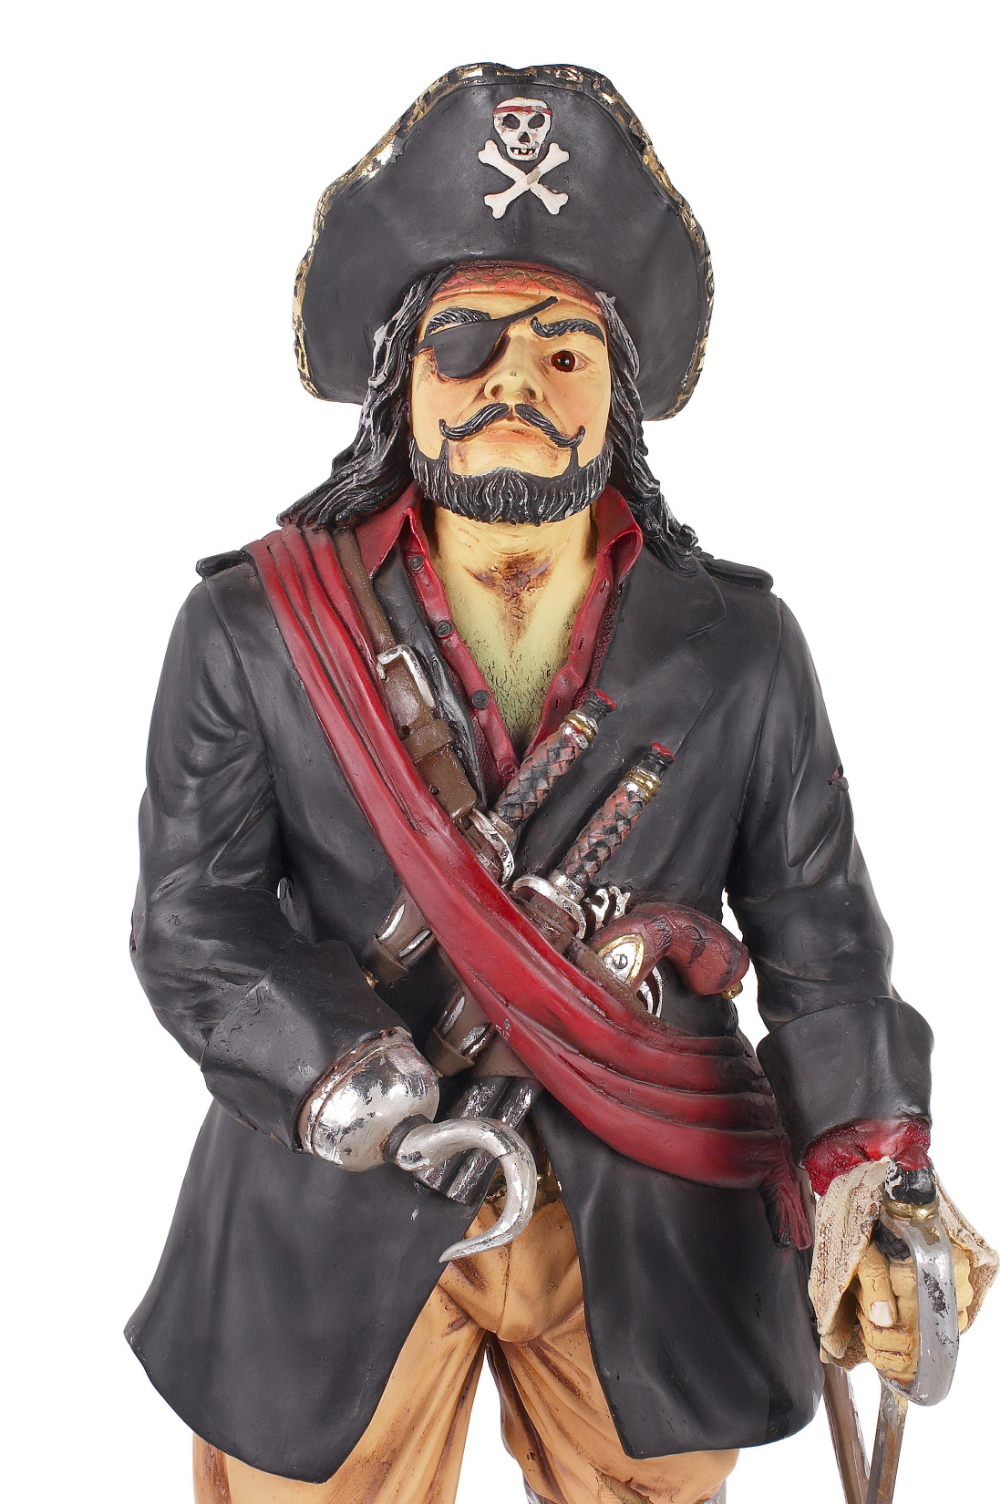 How To Make Captain Hook S Hook Captain Hook From The Disney Peter Pan Film Is A Great Character To Choose For A Costume Pirate Costume Captain Hooks Costumes